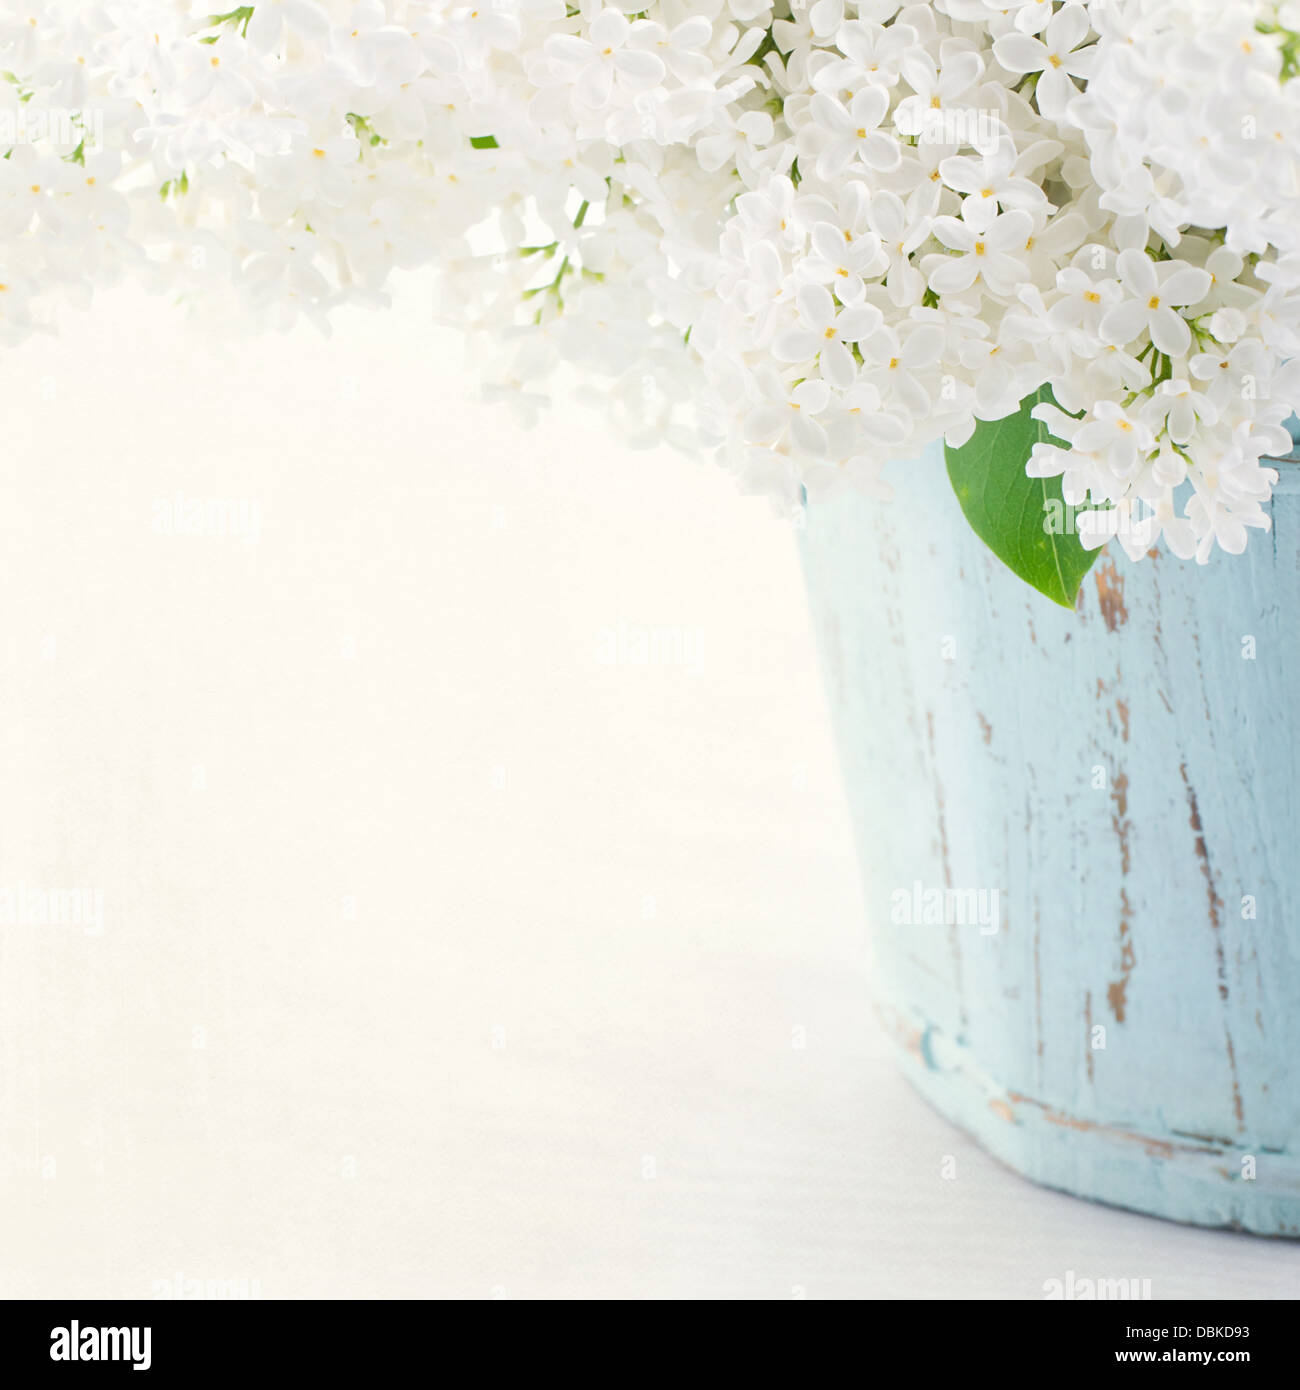 Bouquet of white lilac spring flowers in a wooden blue vase on light shabby chic background - Stock Image